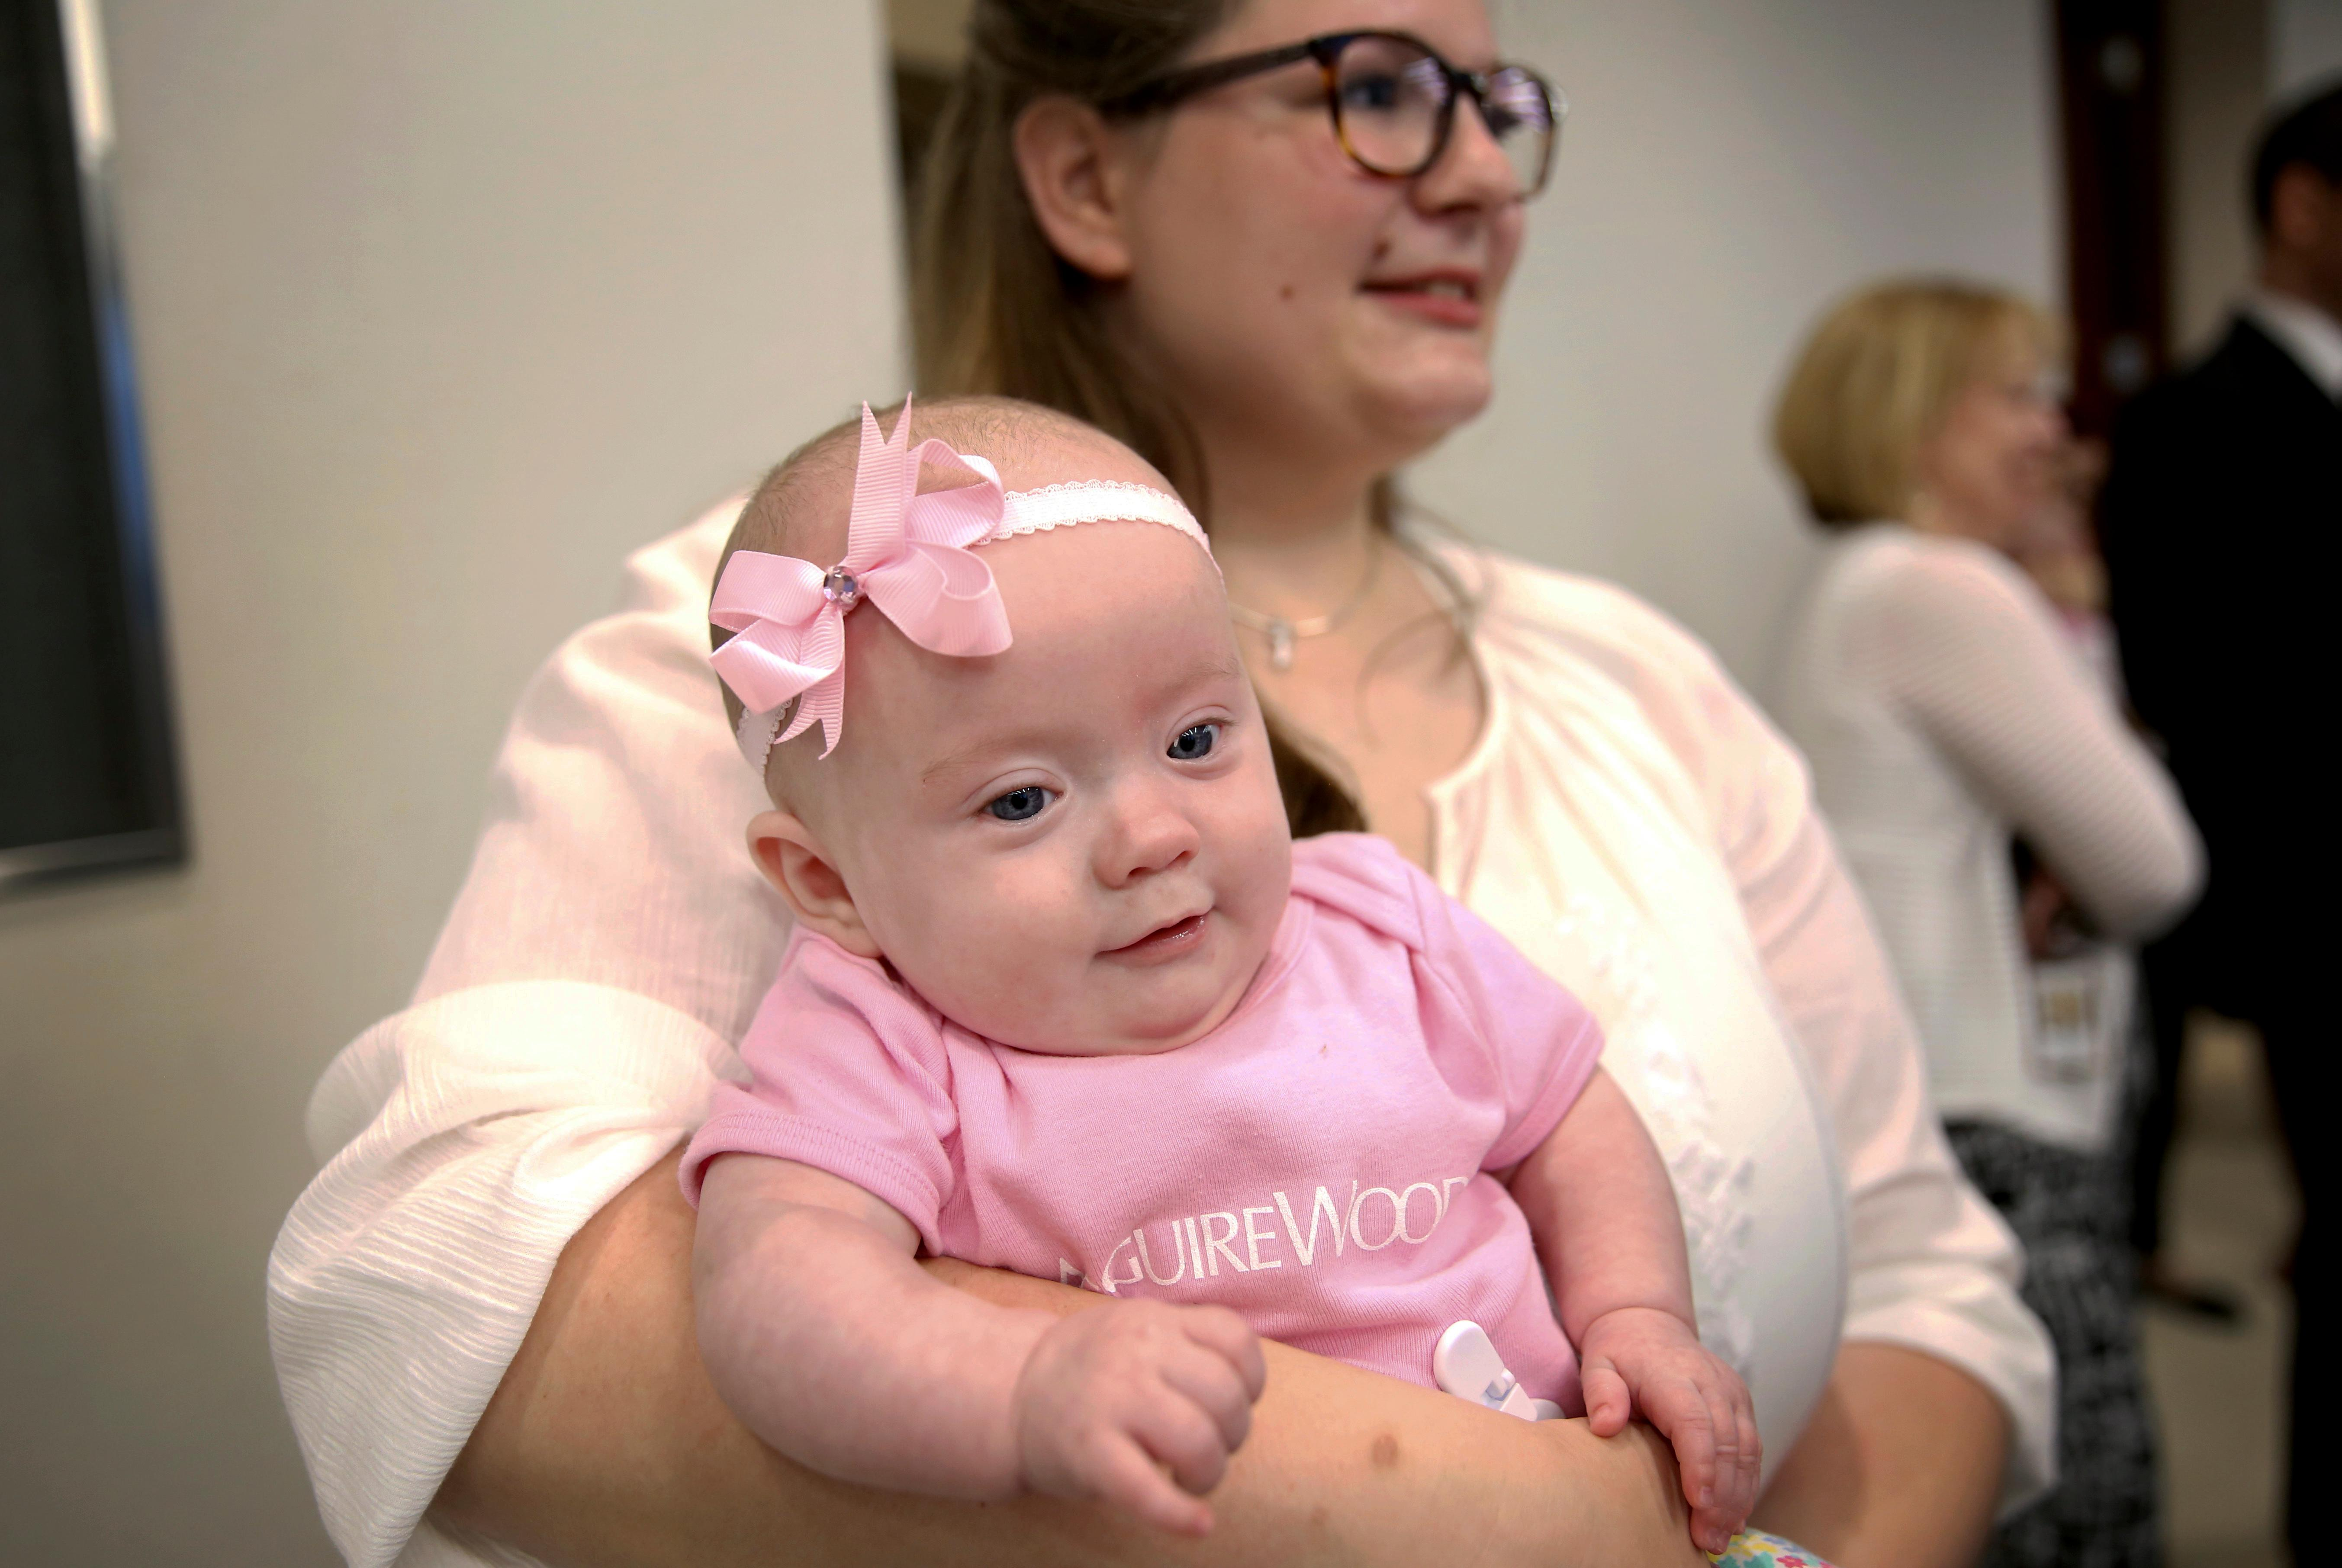 "Merle Wittig, one of the Baudinet family au pairs, holds Ava Louise Baudinet while the family is greeted at McGuireWoods on Tuesday May 16, 2017, in Richmond, Va. The Baudinet quintuplets made their public debut Tuesday in Richmond. Ava Louise, Clara Catherine, Camille ""Millie"" Whitney, Luke Thomas, and Isabelle Frances were born Dec. 4 in Arizona.   (Shelby Lum/Richmond Times-Dispatch via AP)"